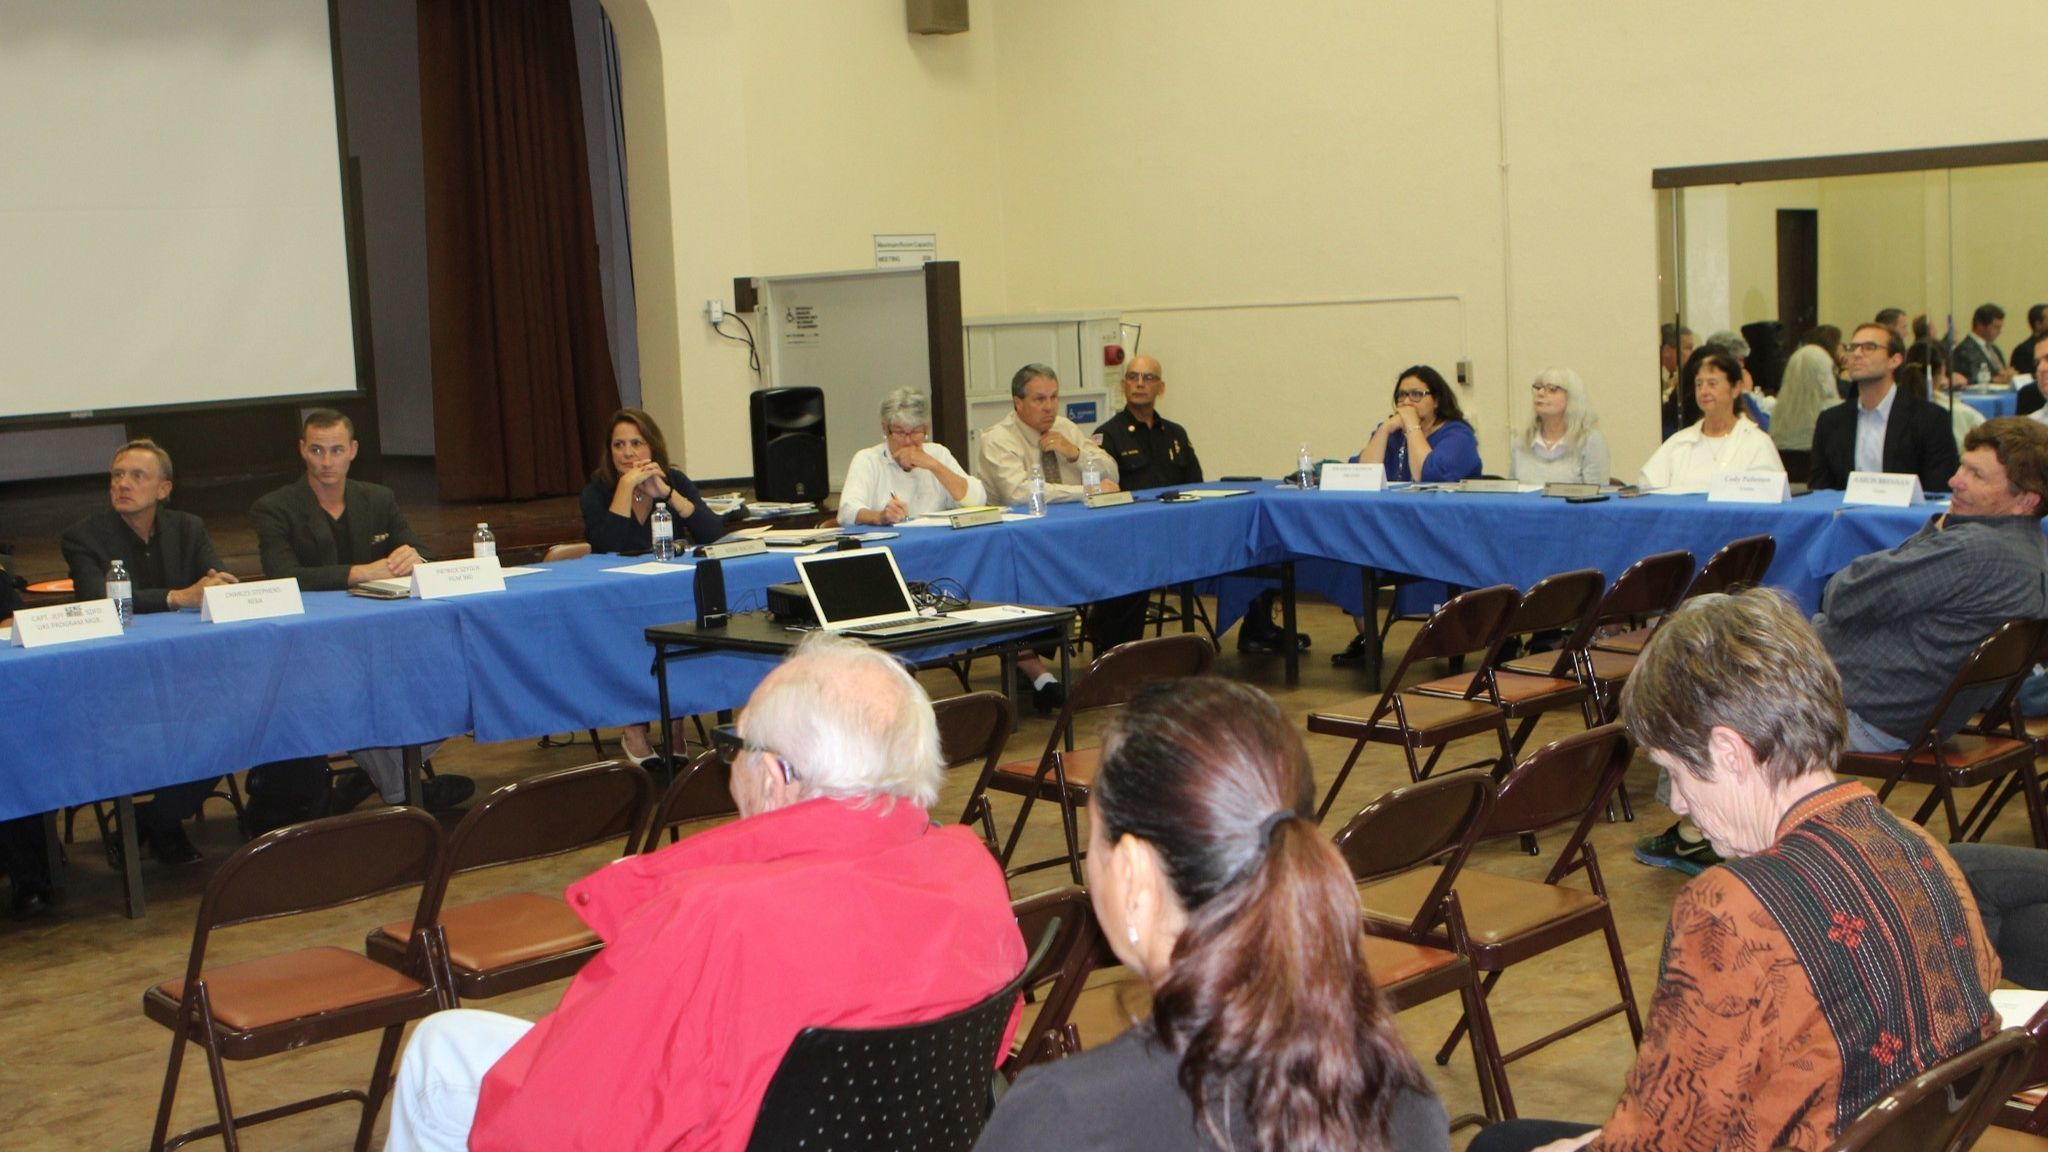 La Jolla Town Council members listen to experts extoll the virtues of drones and warn about their potential for misuse.